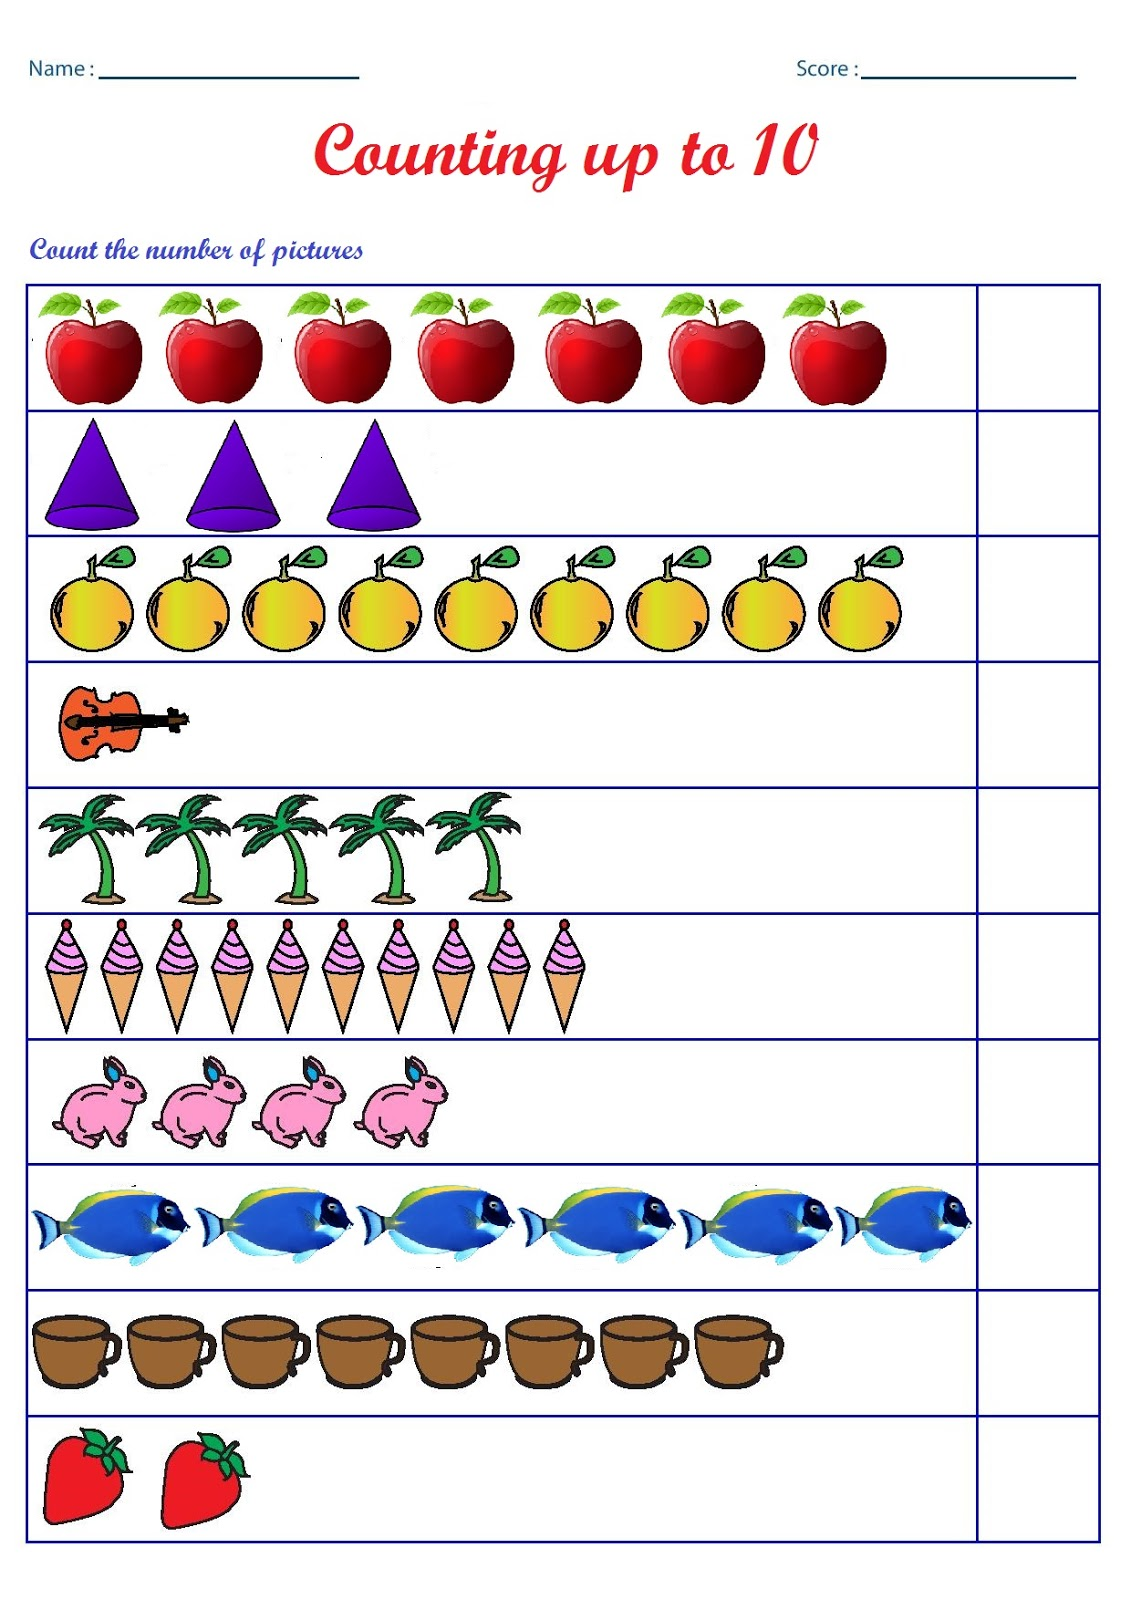 math worksheet : kindergarten worksheets counting worksheets  count the number of  : Counting Worksheet For Kindergarten